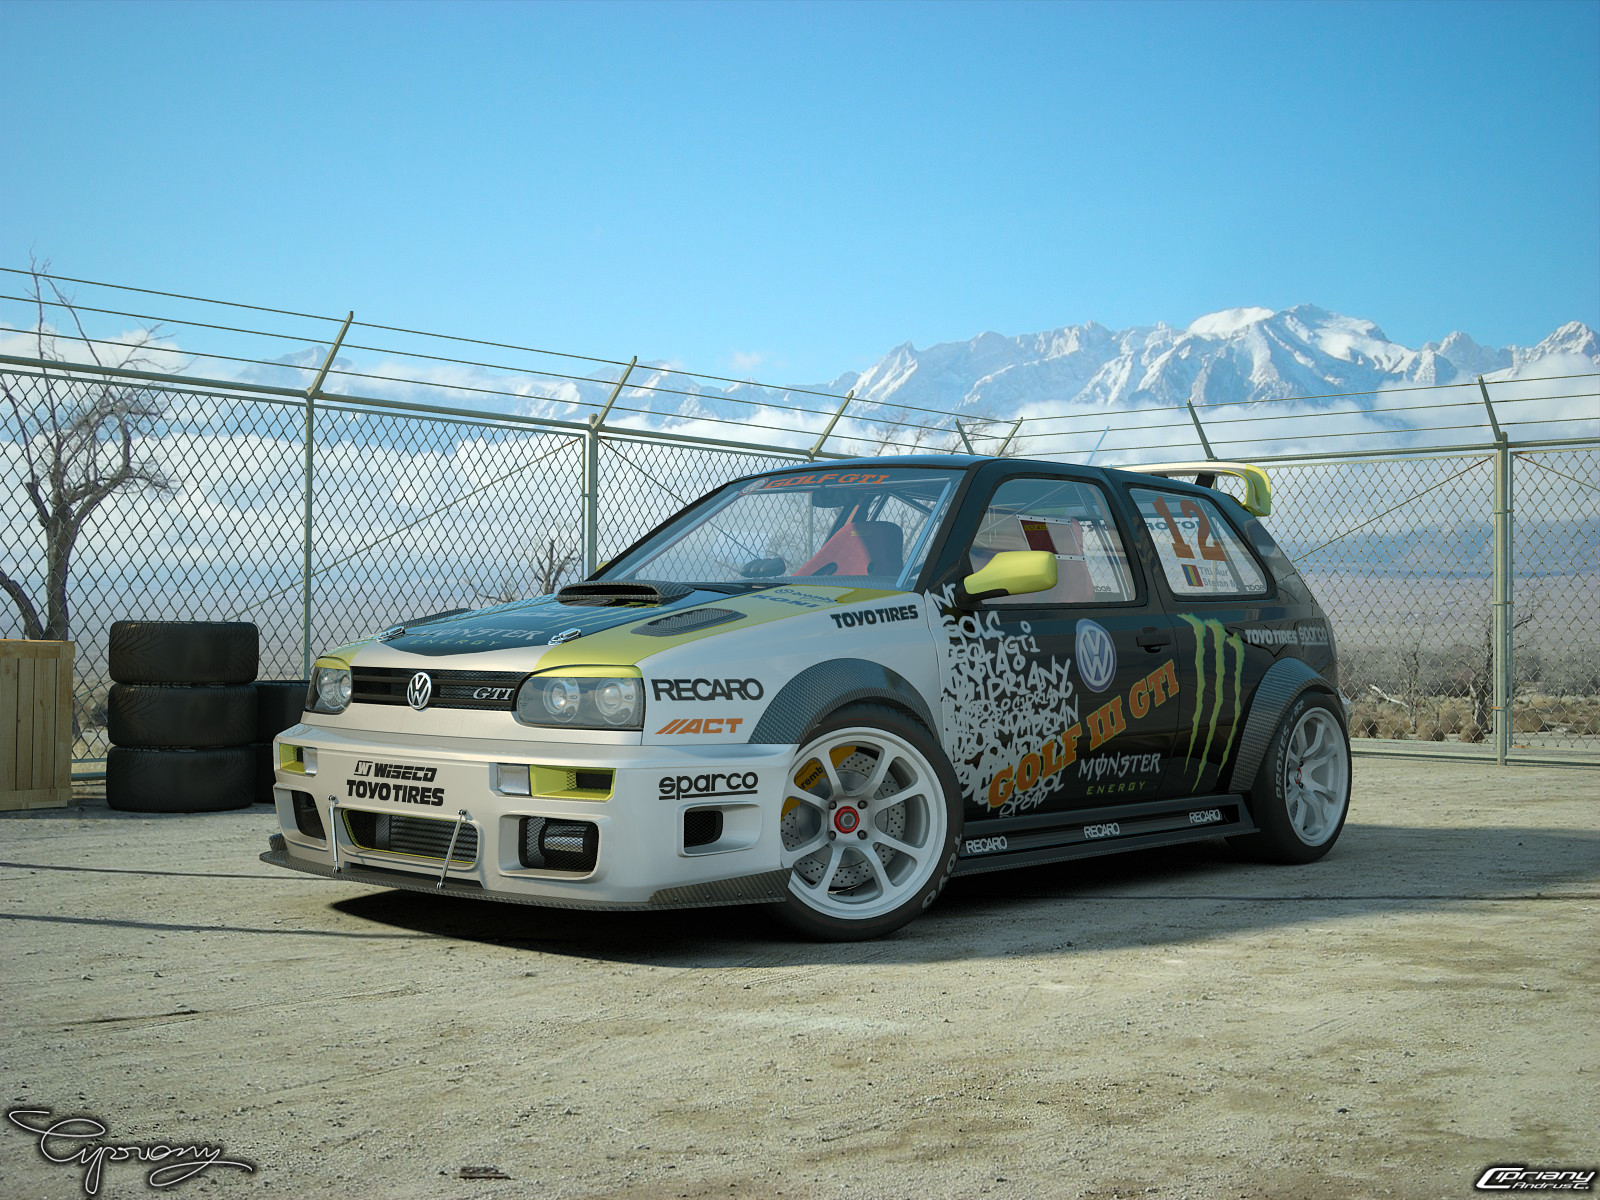 VW Golf 3 GTI 16V hobbi p  lyaaut